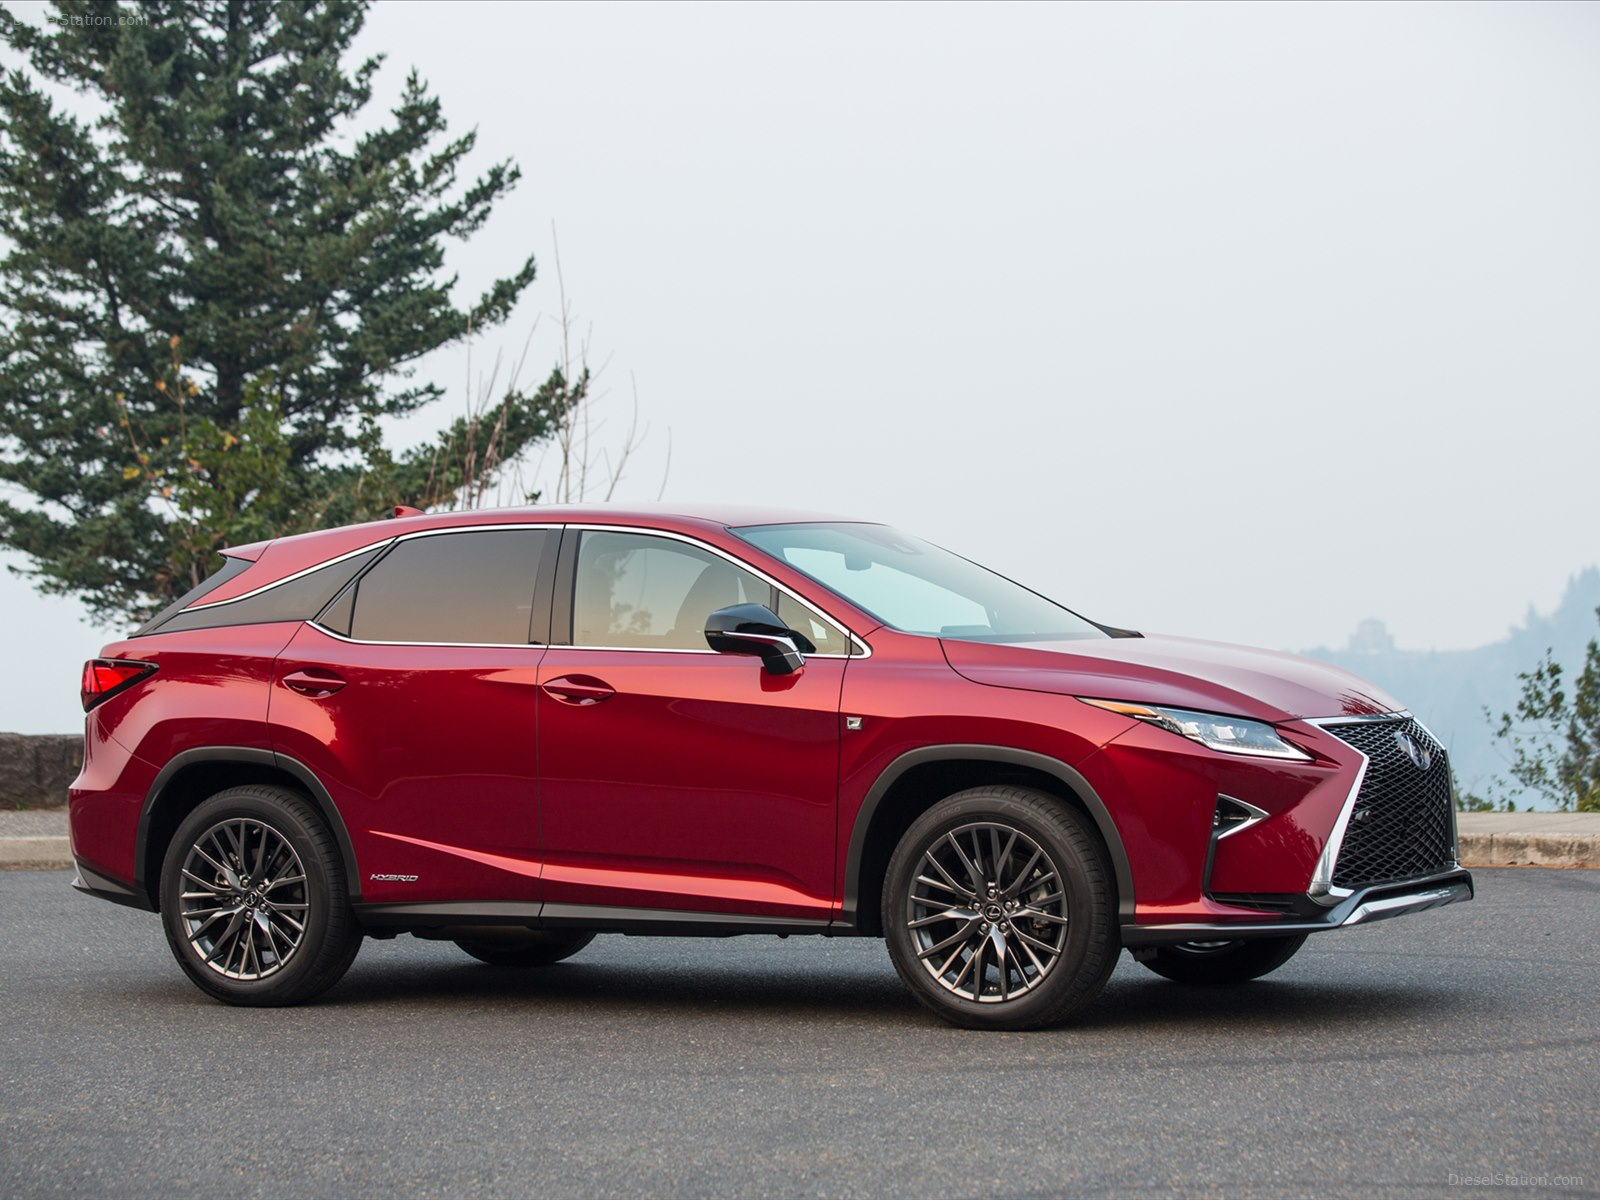 2019 Lexus RX 450h F Sport photo - 4